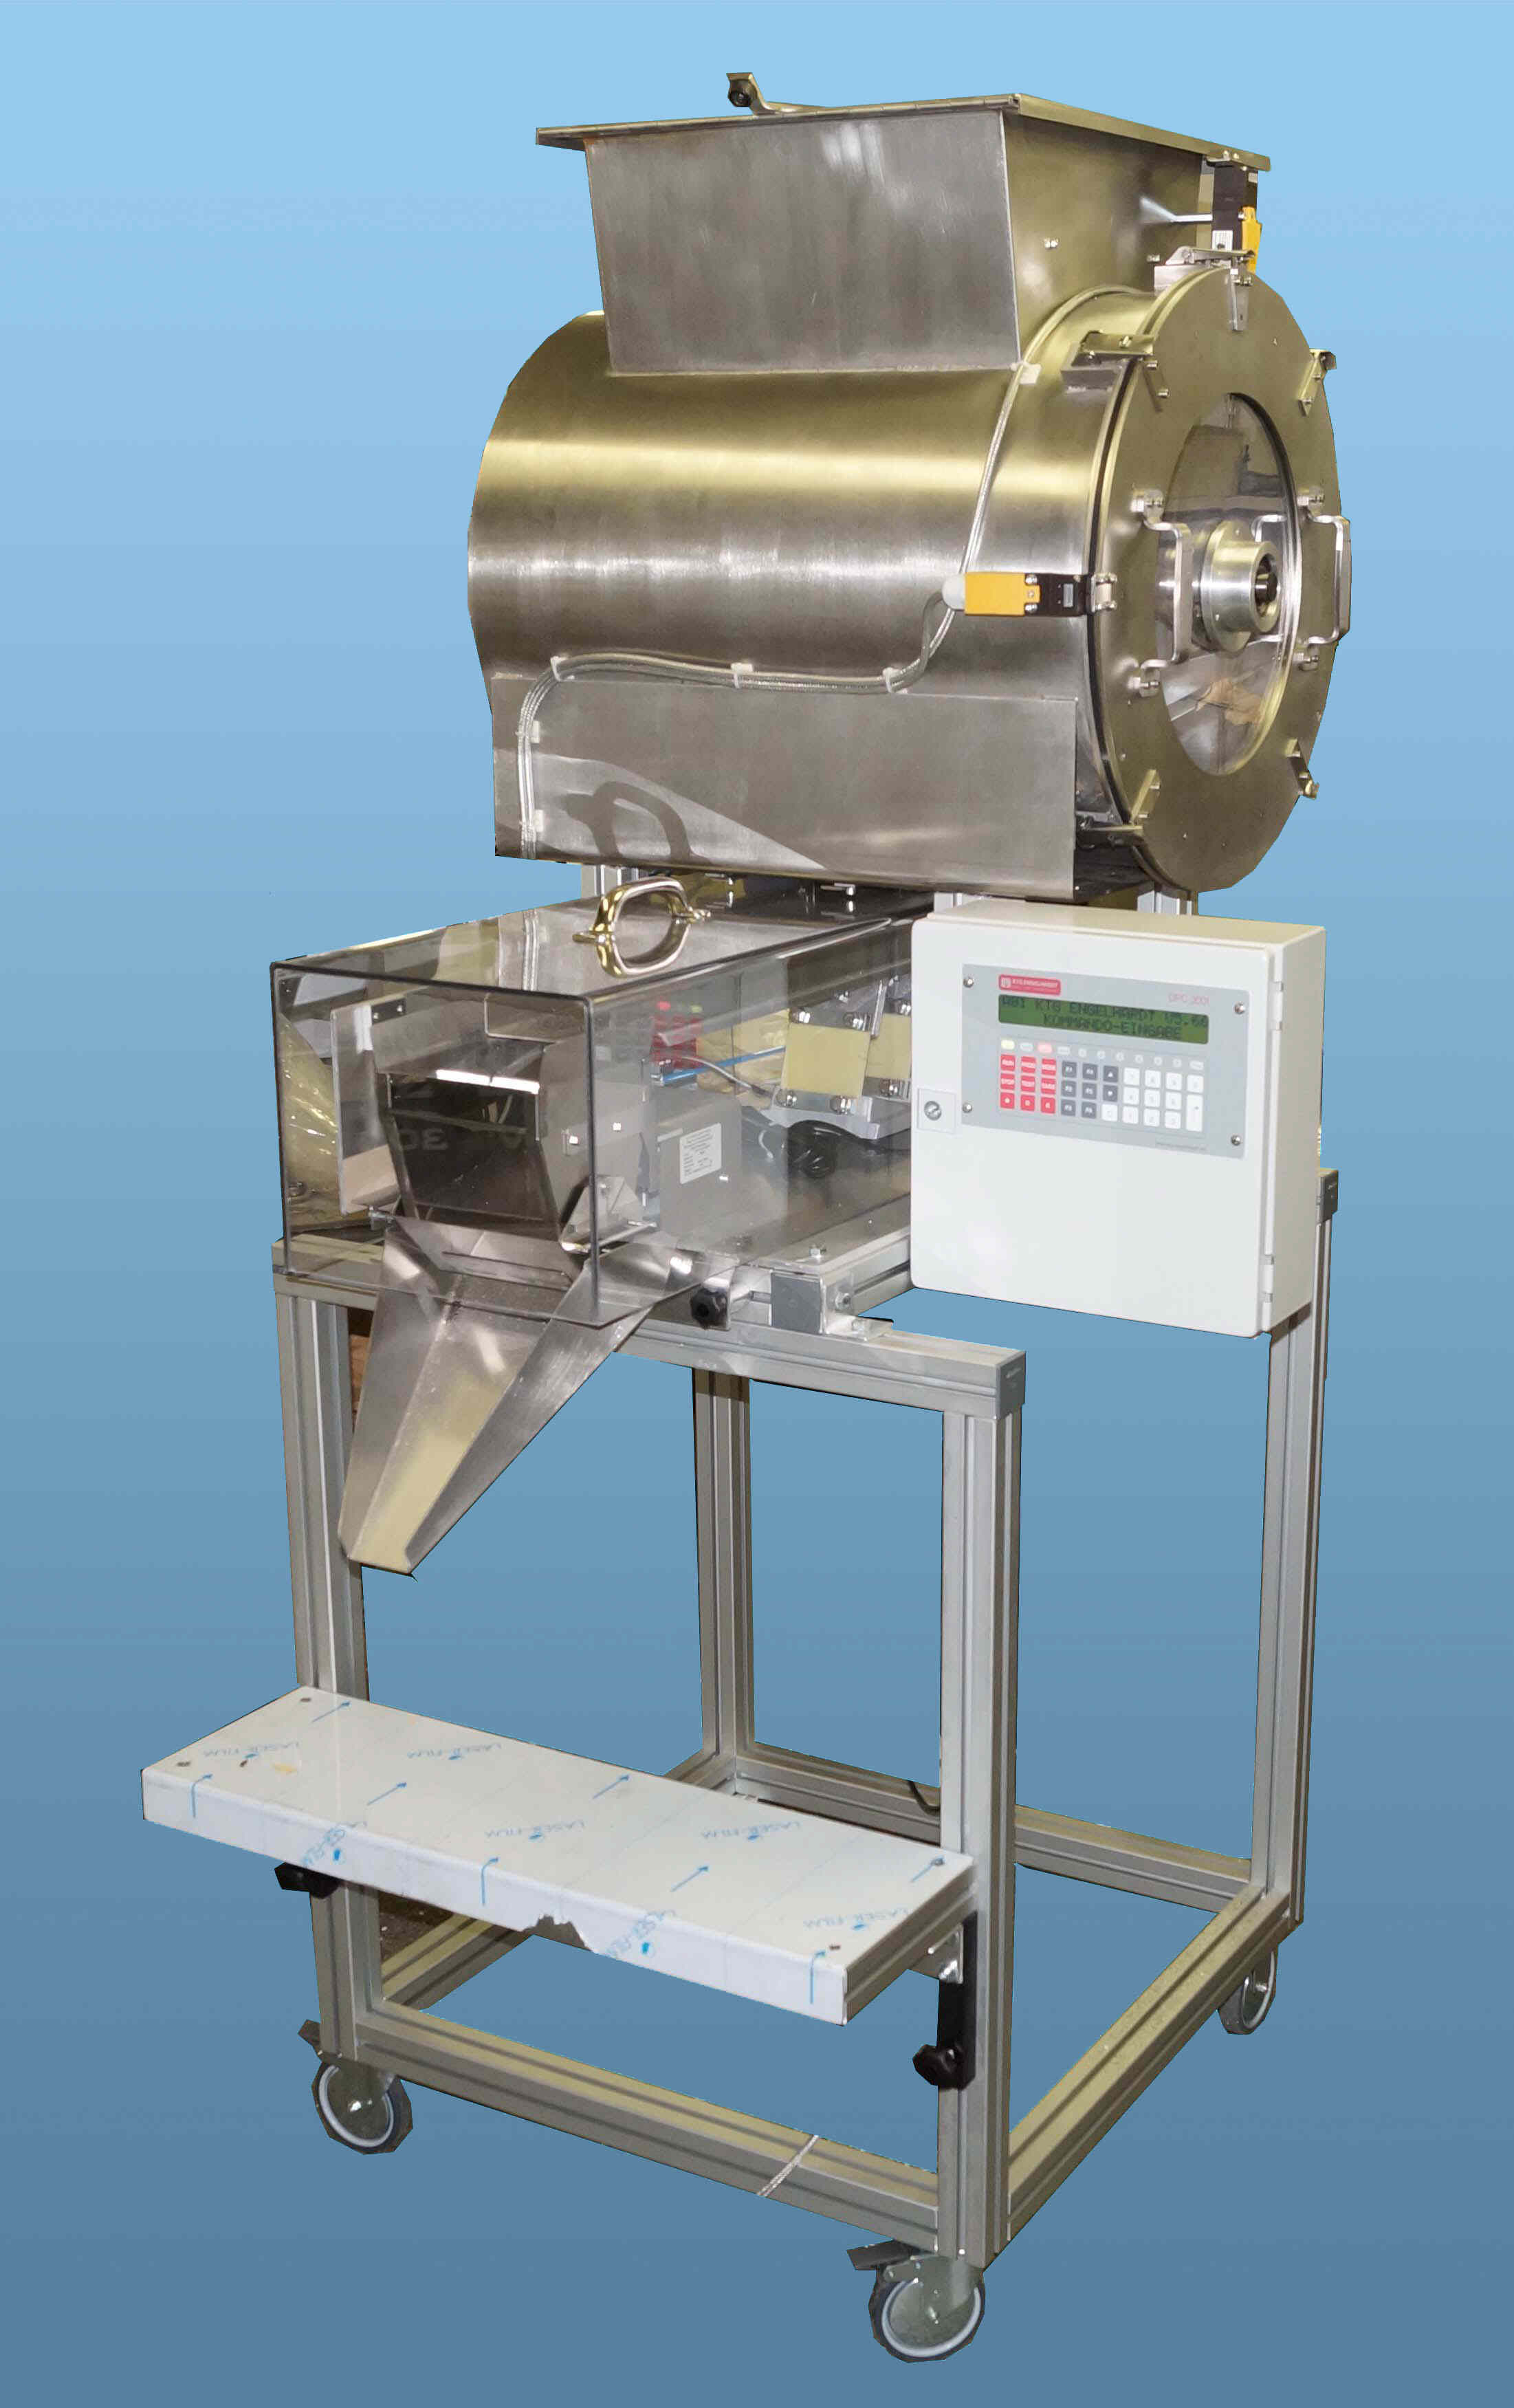 Batch weigher, filling unit, bag scales, bagging scales, Brake Pad weigher, dosing, dosing weigher, dosing scale, electronic scale, spice scale, fiber scale, small-volume scale, Smallest quantities filling scale, linear scales, Flour scale, multicomponent scales, mixing drum scales, powder scales, mixer drum level, tea scale, drum scales, weighing equipment, weighing machine, weighing system